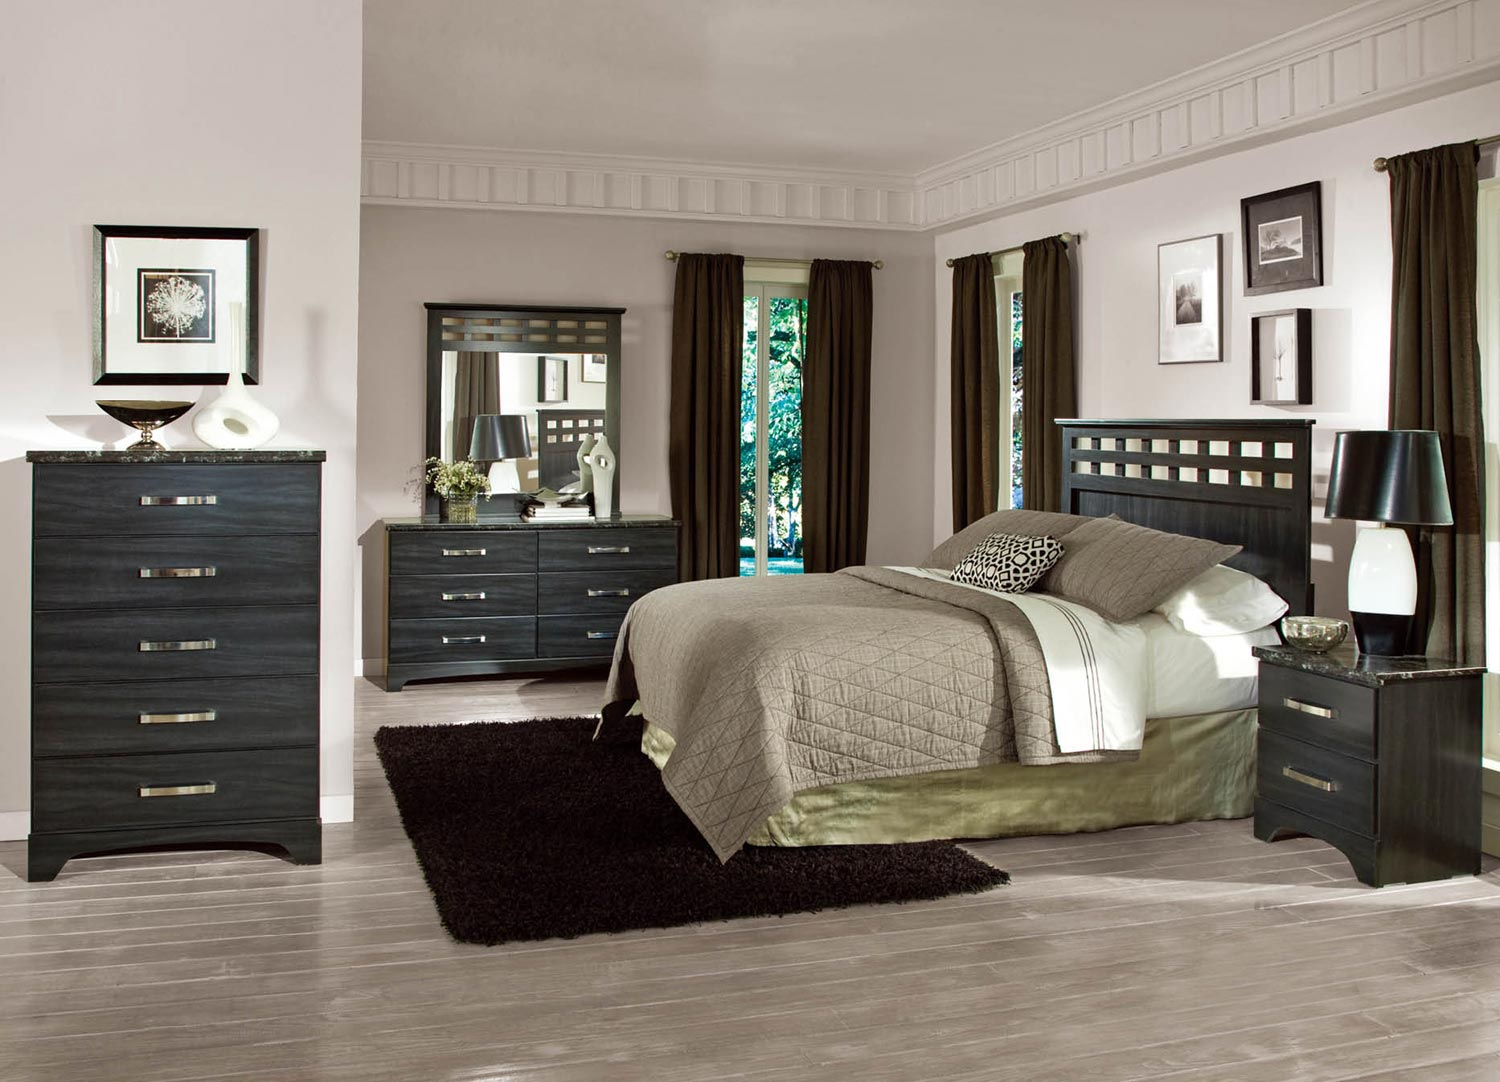 Global Furniture USA Olivia Bedroom Set - Engineered Wood/Oak Wood Graining Laminate - Black